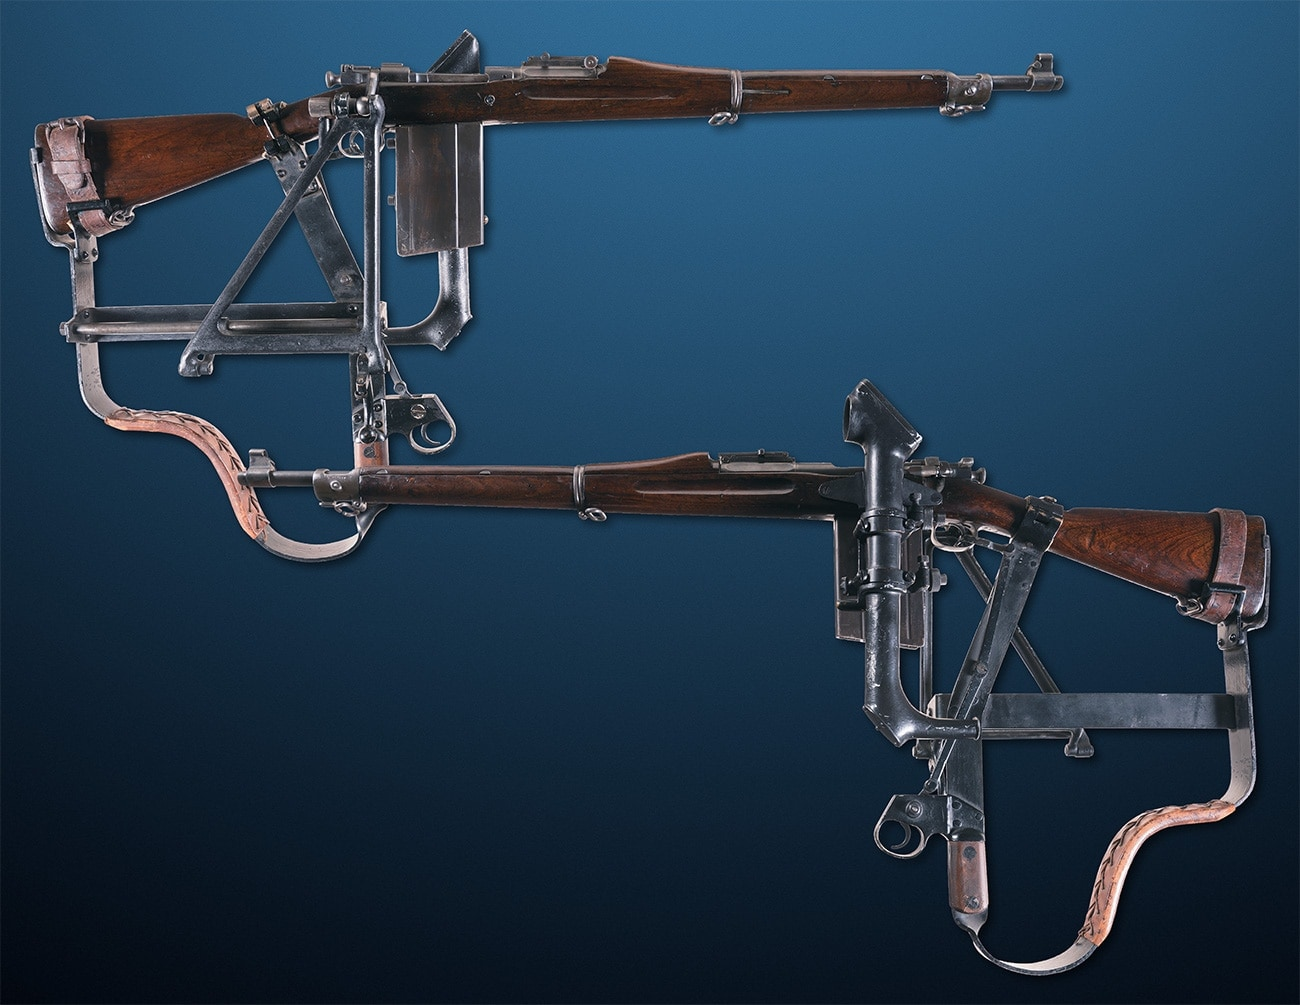 Exceptionally Rare World War I Experimental Cameron-Yaggi M1903 Springfield Trench Rifle with Periscope Sighting Device 7